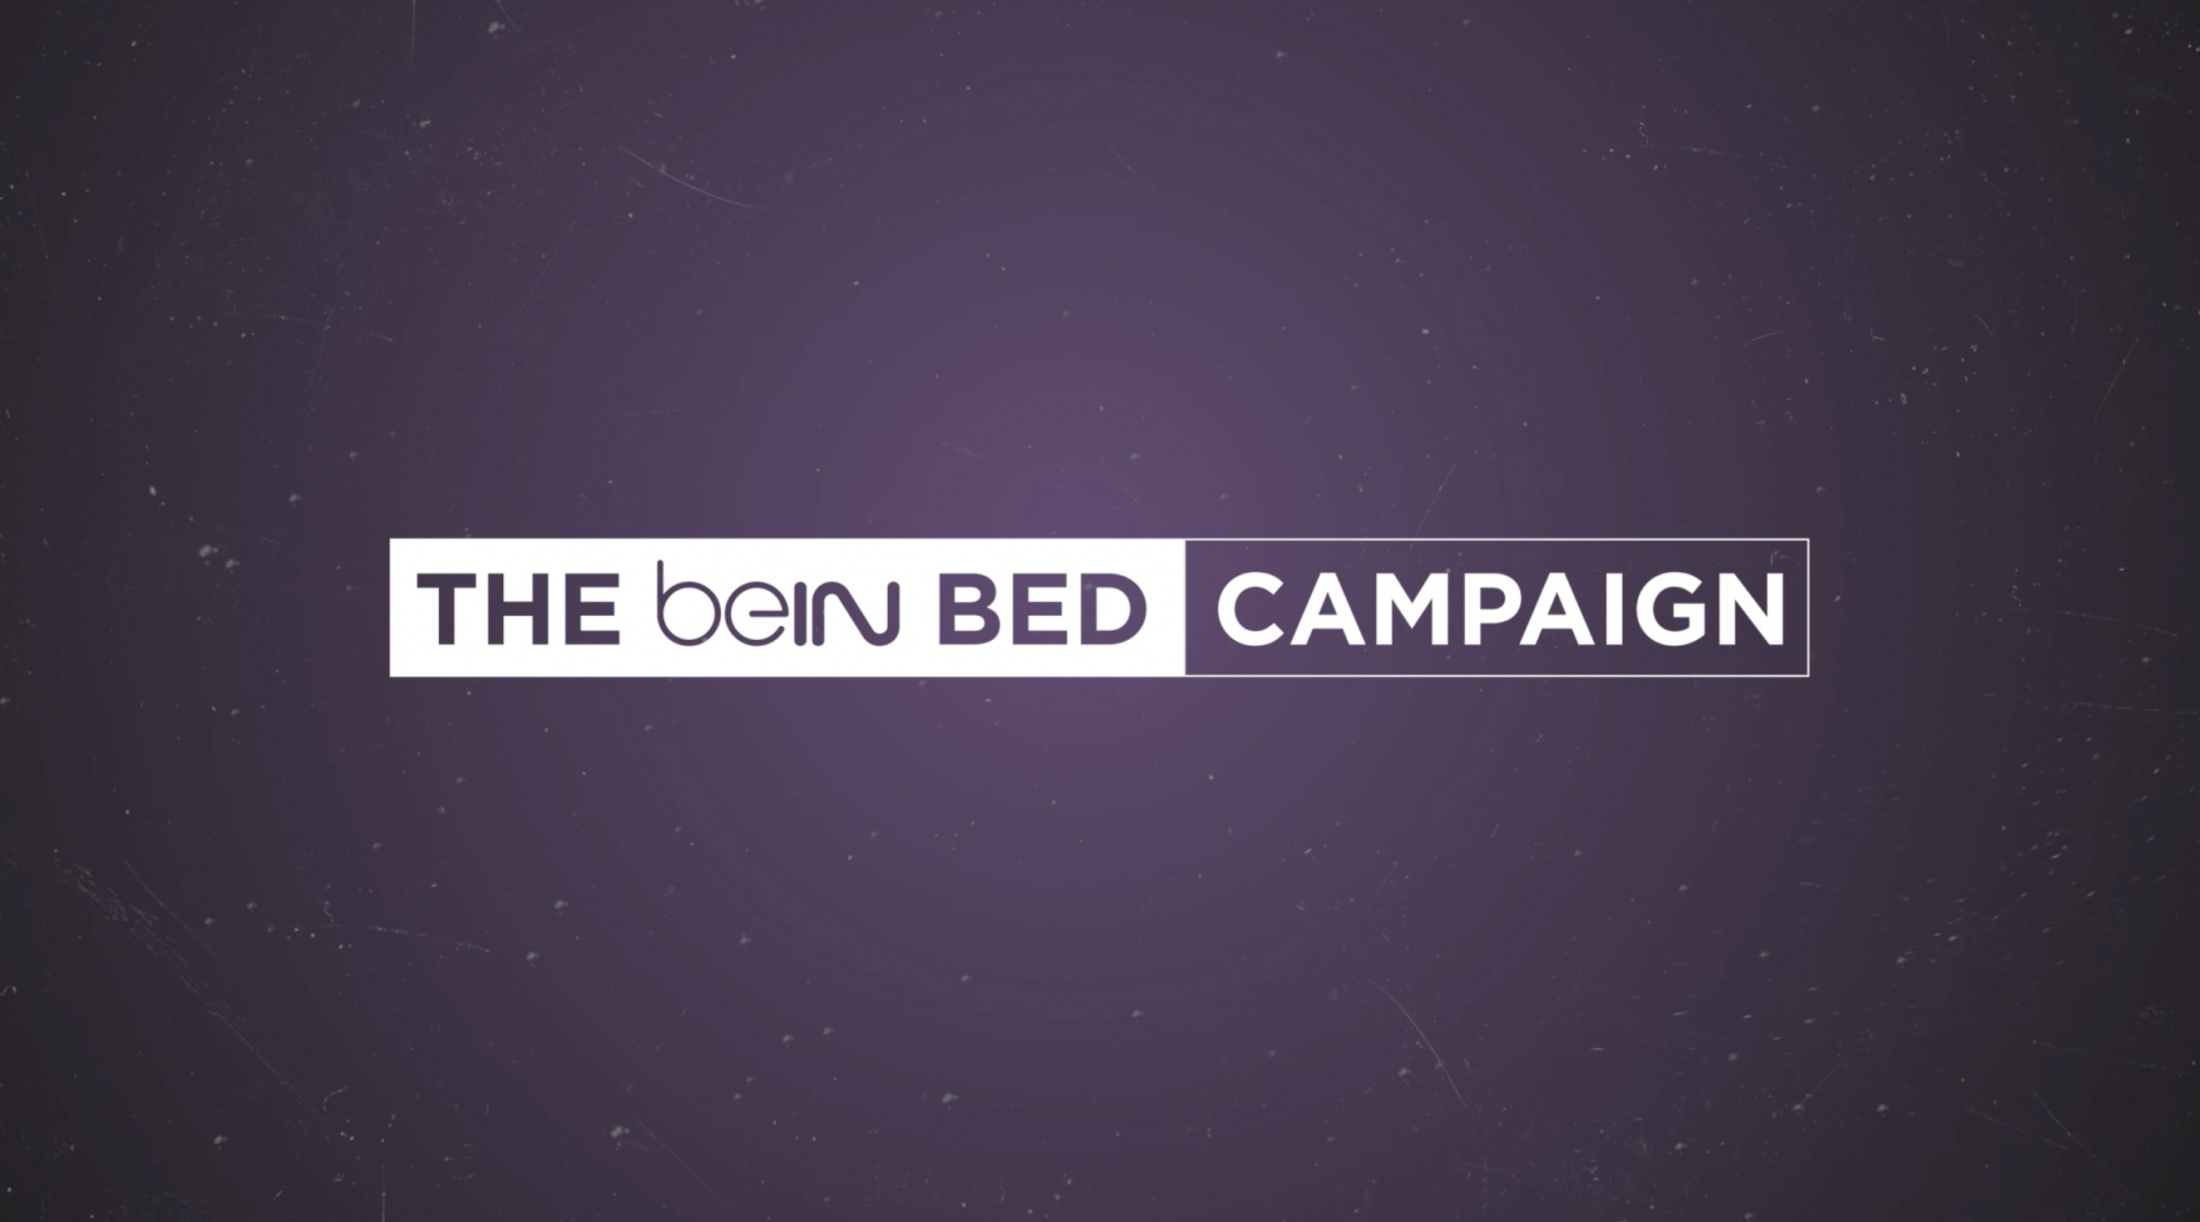 Thumbnail for The beIN BED CAMPAIGN